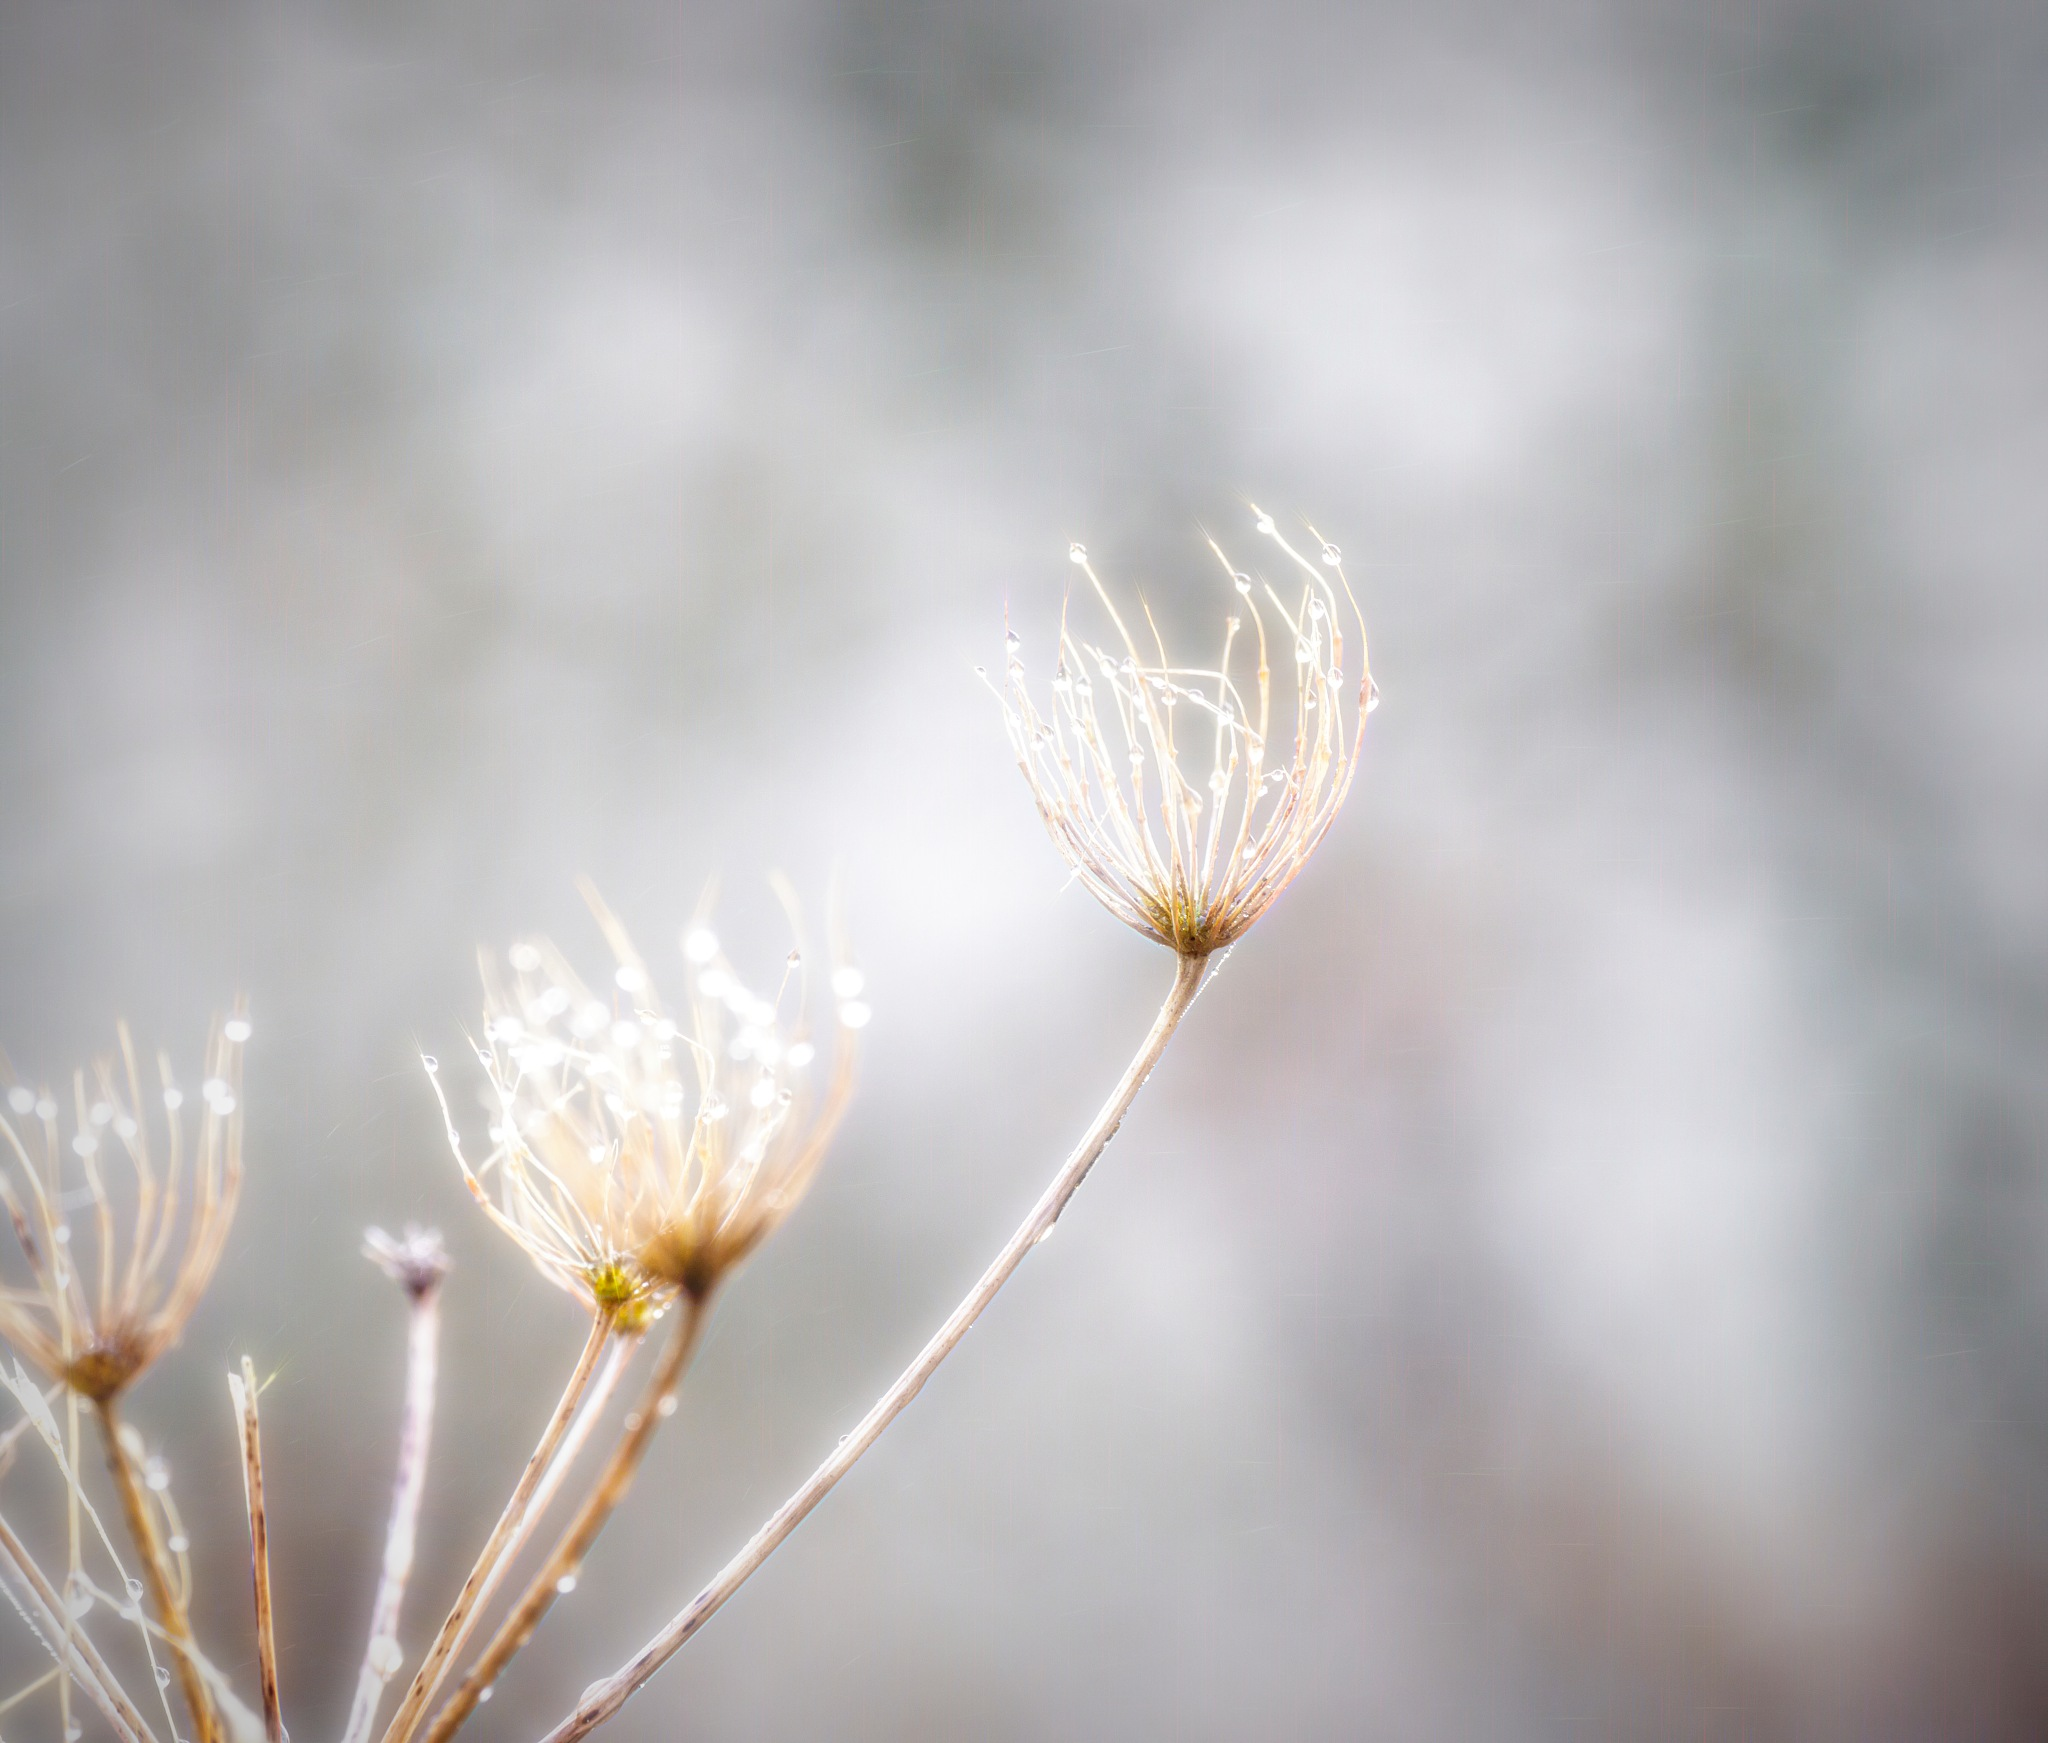 Fog Droplets on Seed Head by Sarah Walters